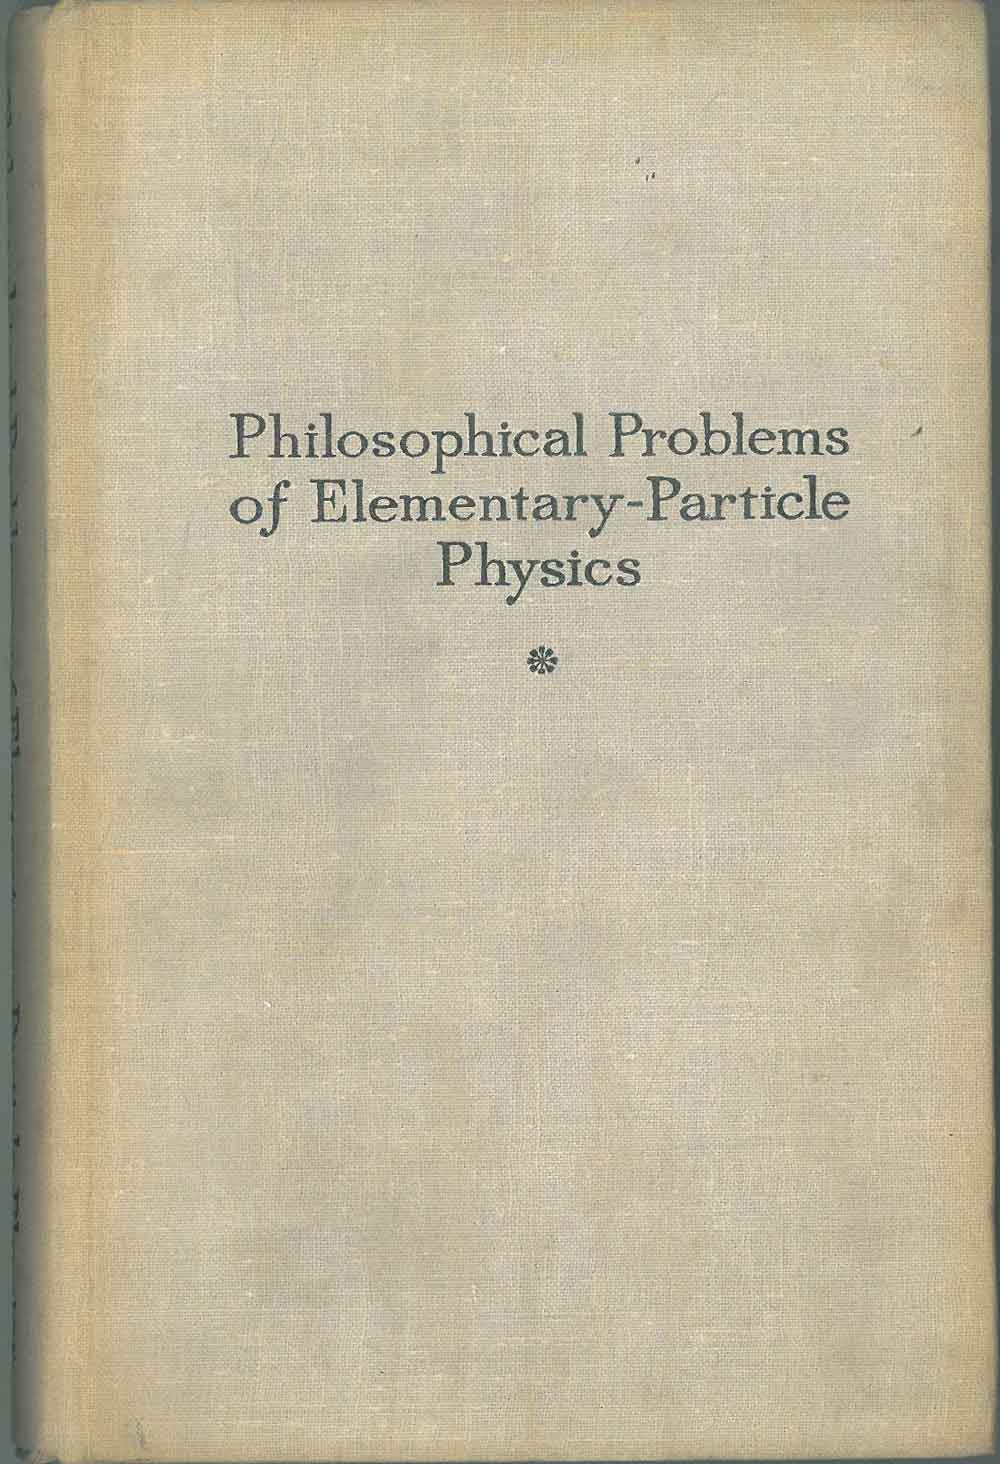 Philosophical problems of elementary-particle physics